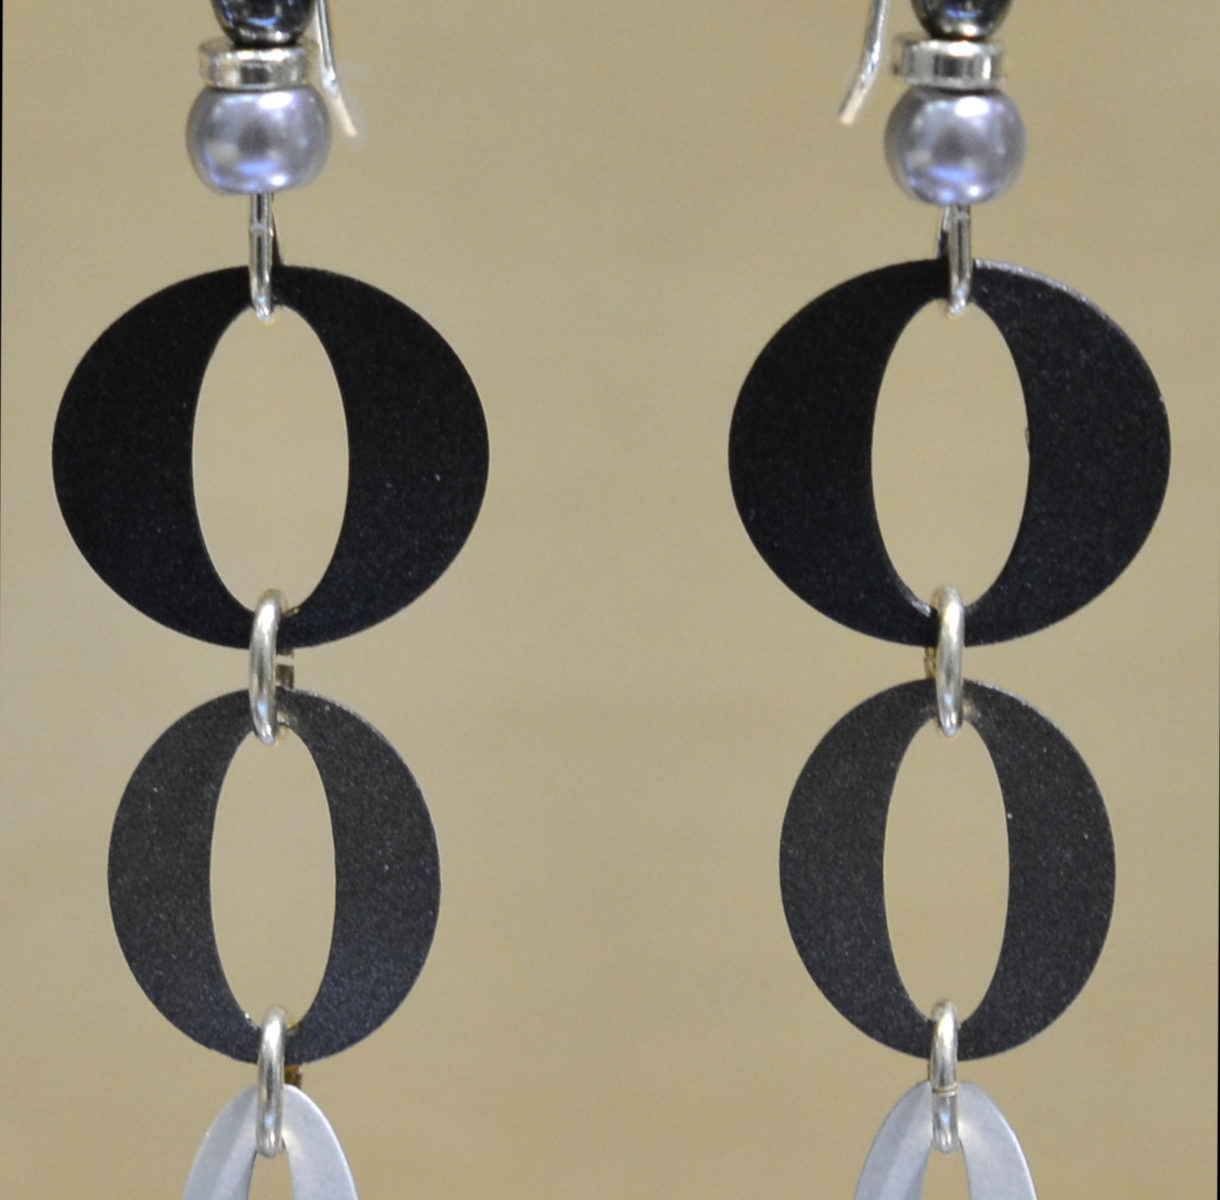 black, white, and gra ovals design drop earrings